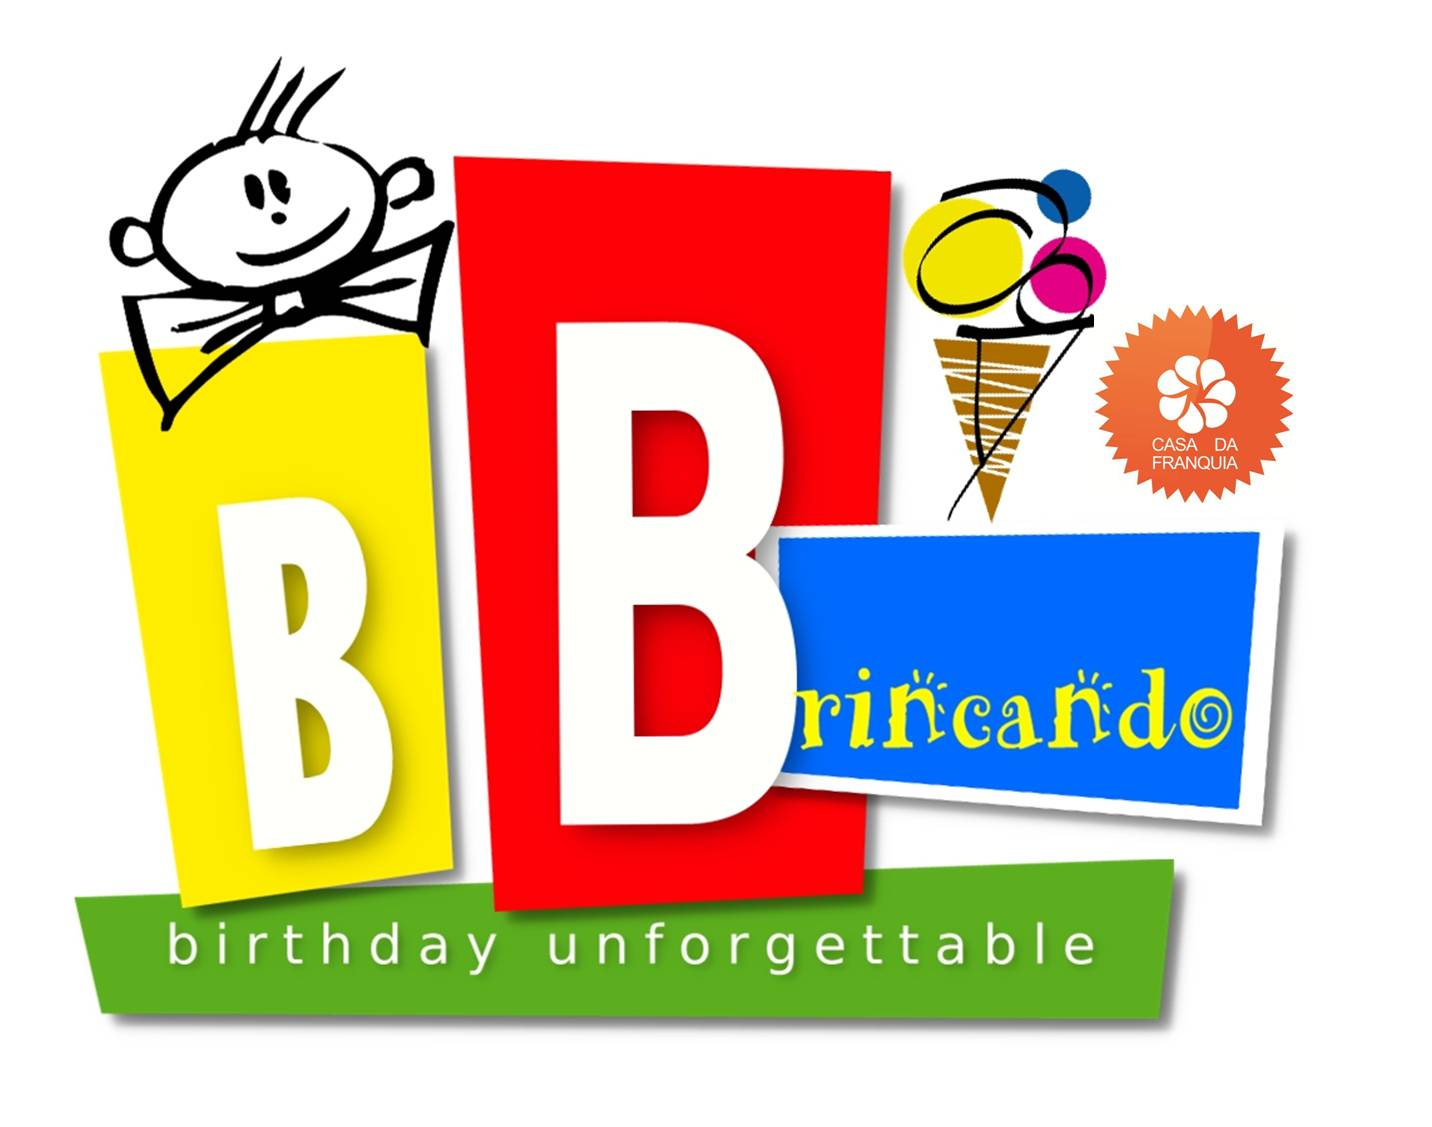 BB Brincando – birthday unforgettable